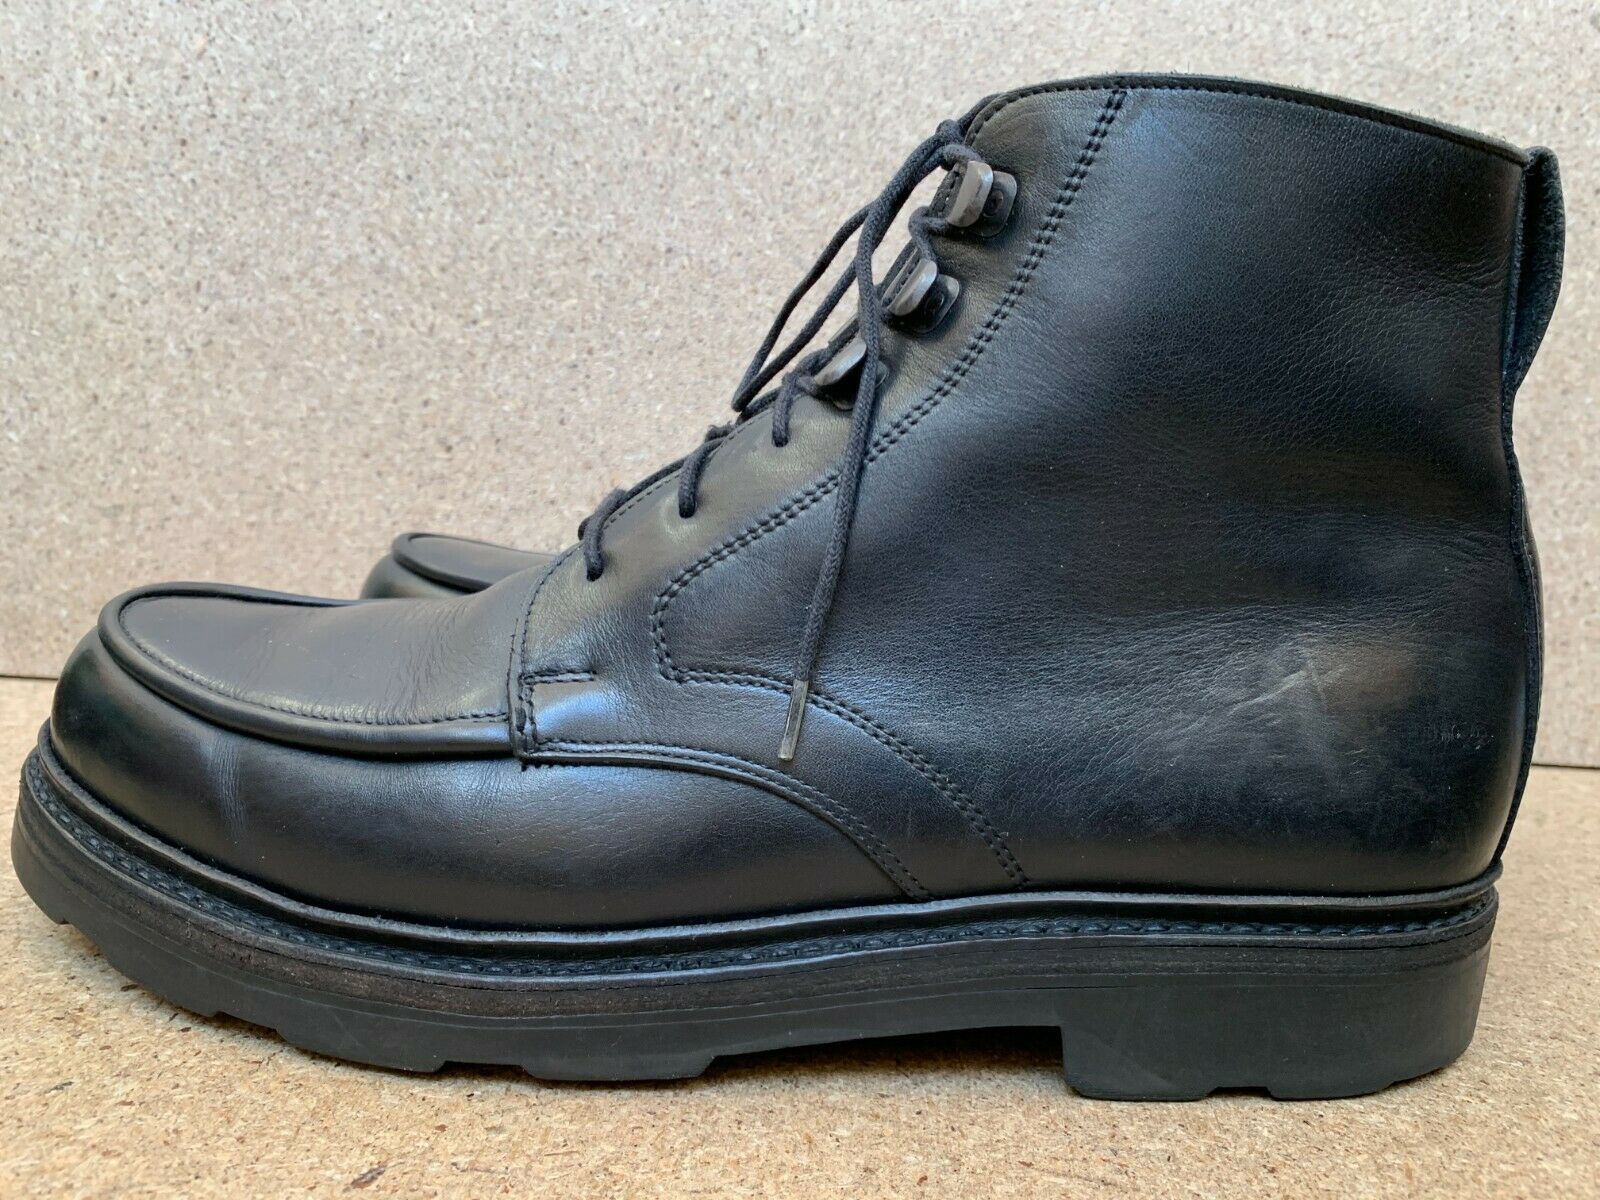 Ludwig Reiter Dachstein Black Boots Shoes Size UK 7.5   US 8.5